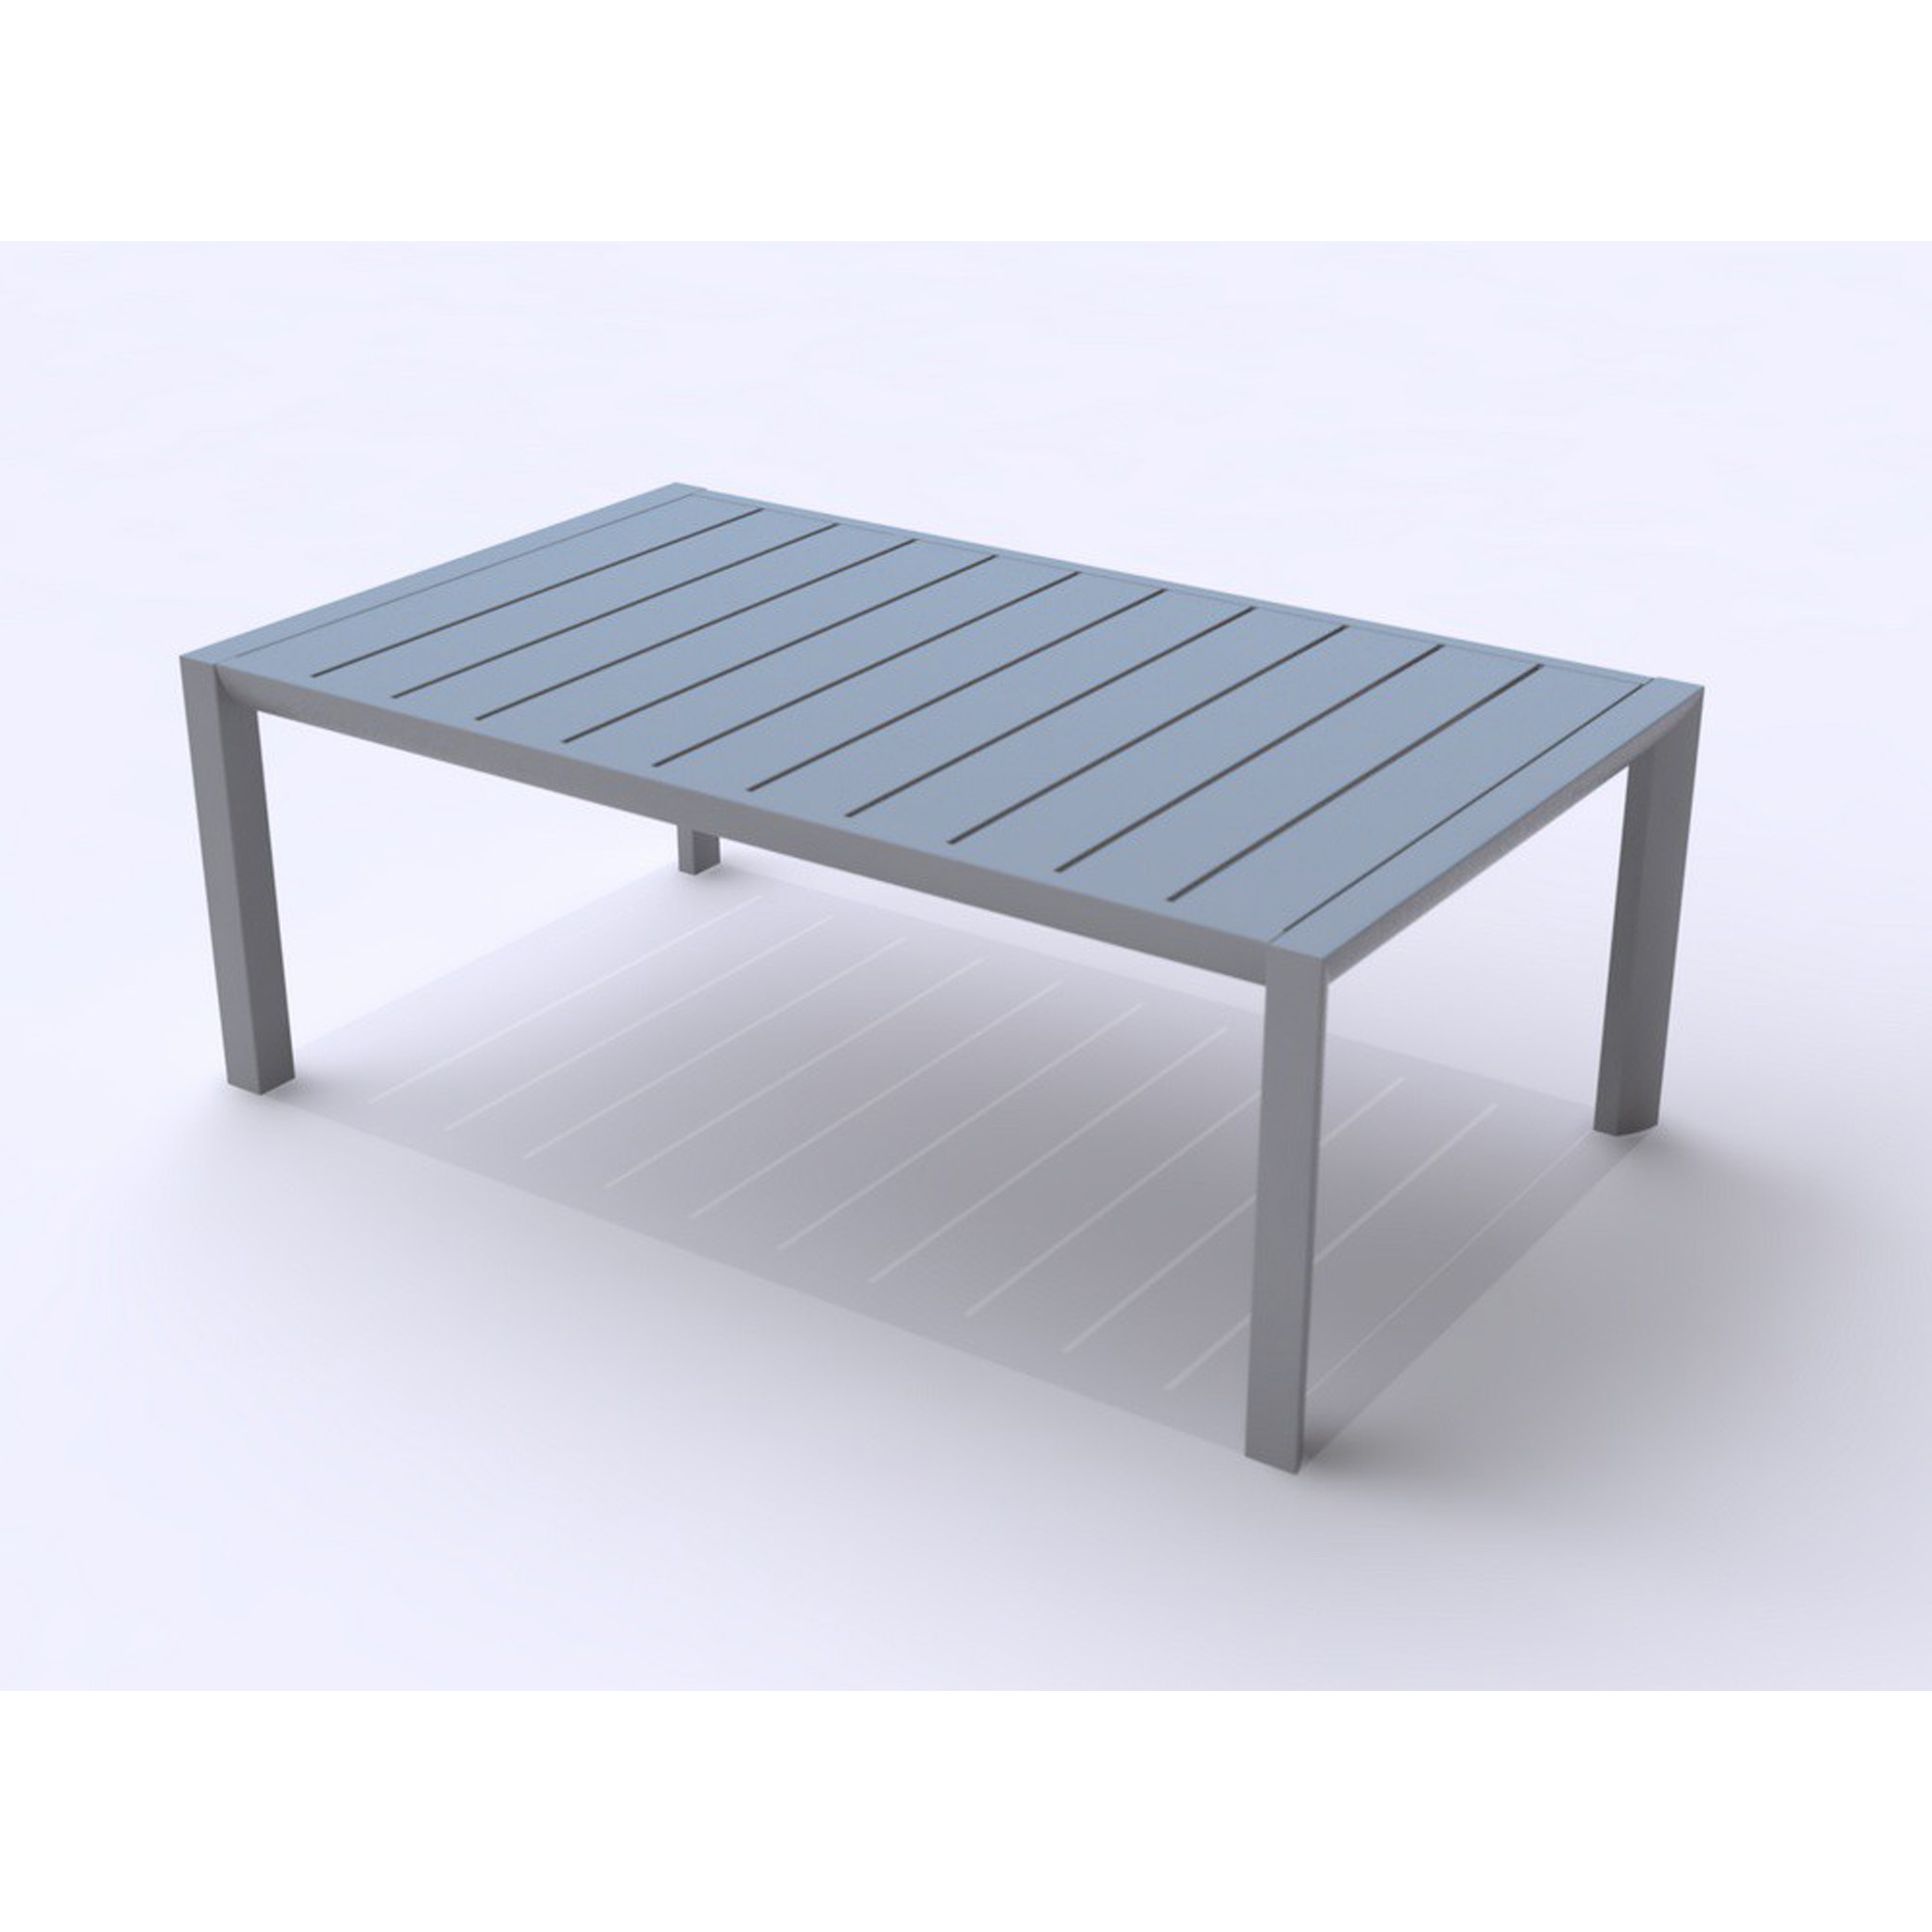 Grosfillex US004289 table, outdoor